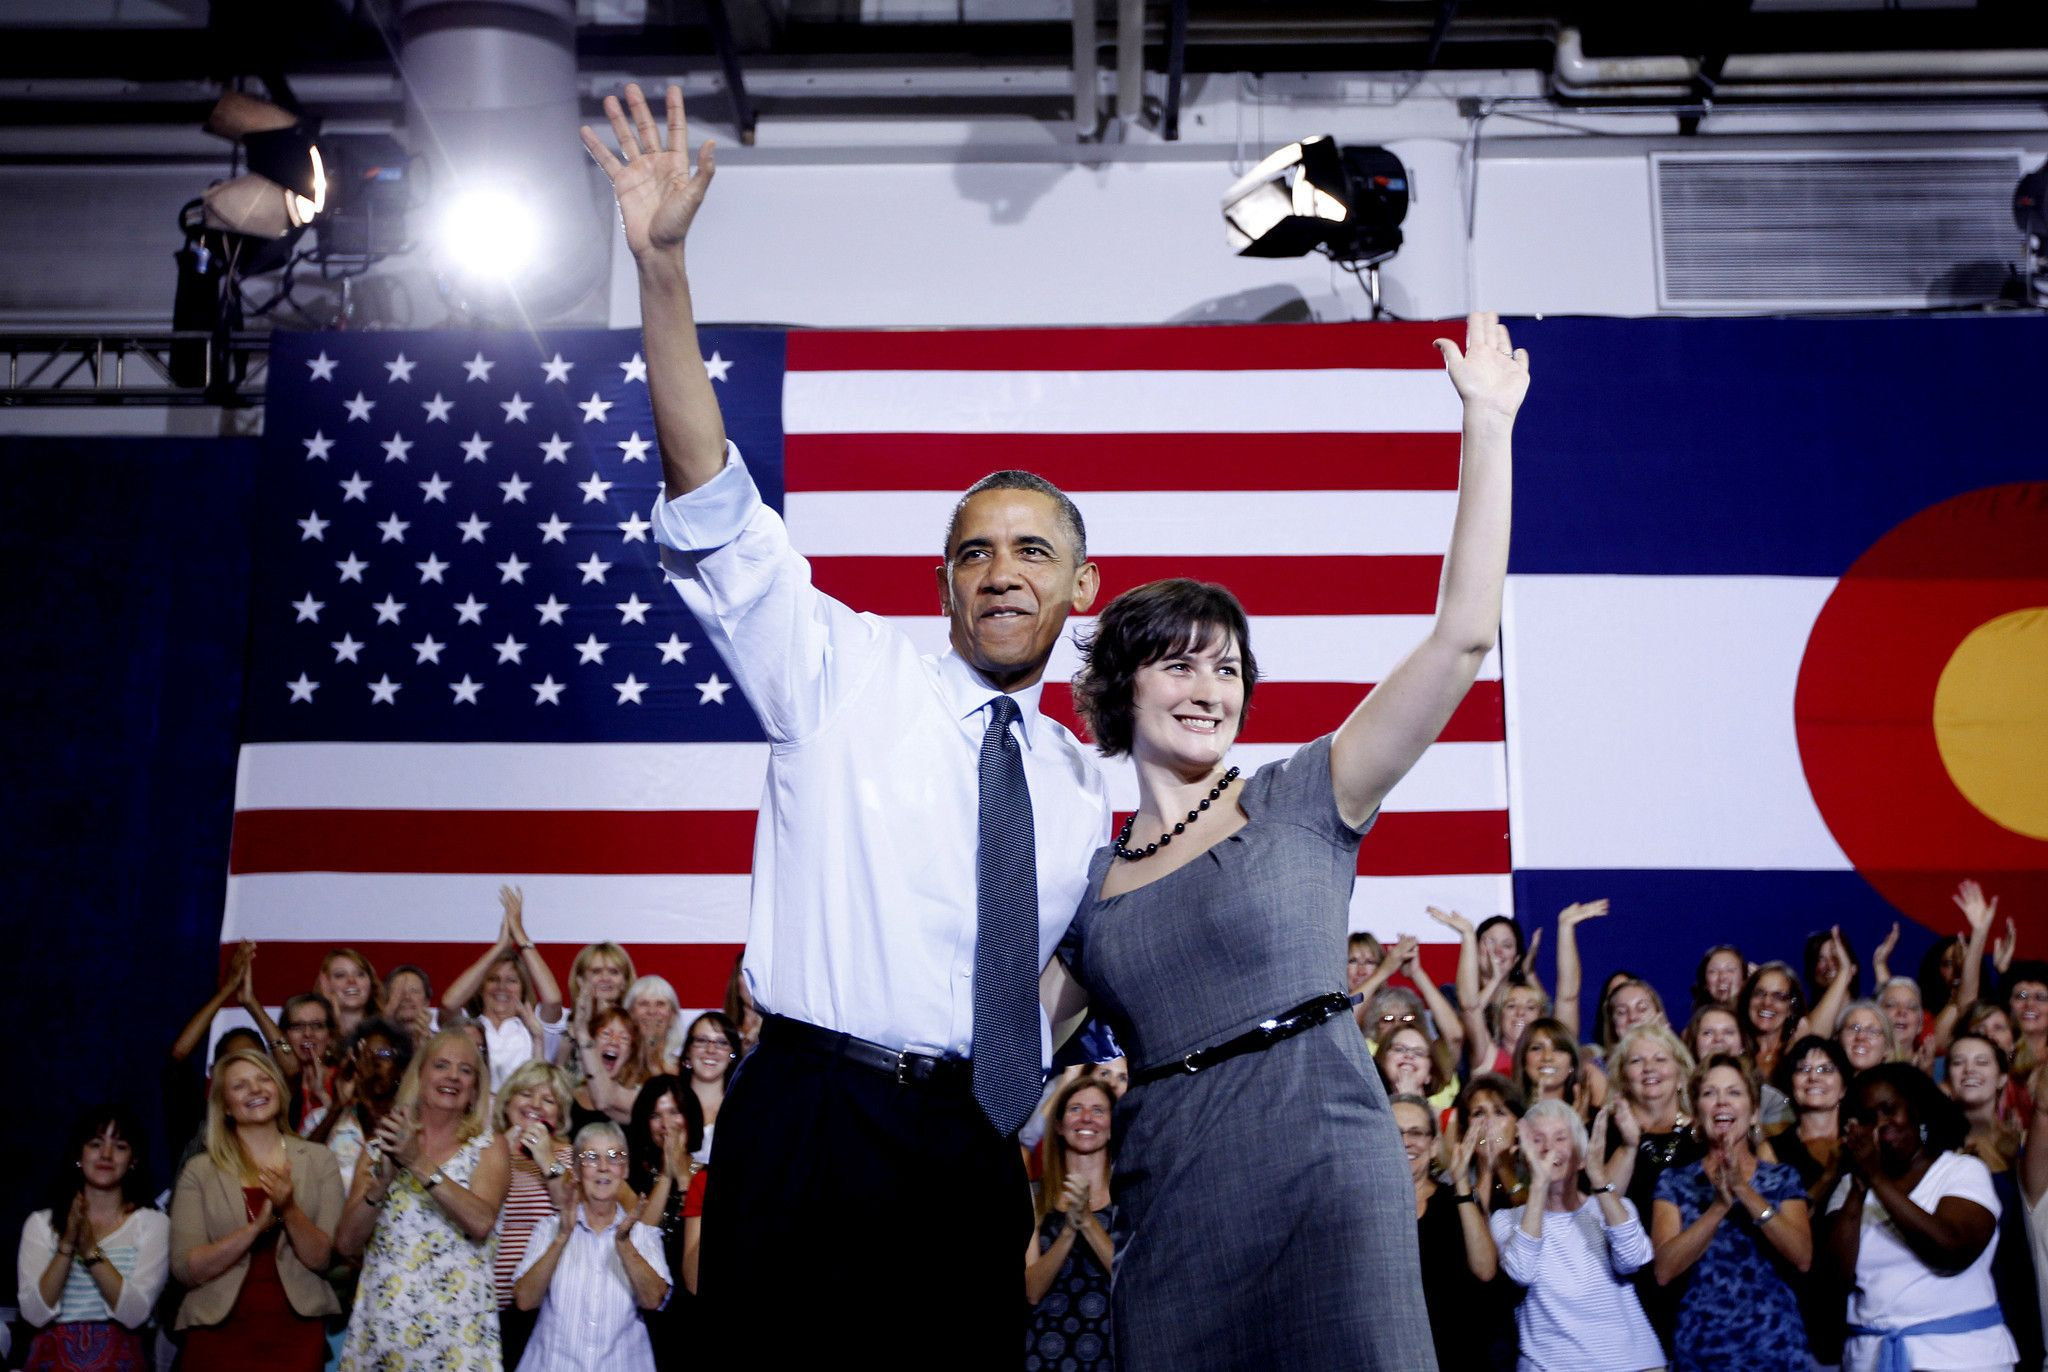 Sandra Fluke forgoes congressional bid to run for state Senate. - LA Times, http://www.latimes.com/local/political/la-pc-sandra-fluke-congress-state-senate-20140205,0,7267538.story#axzz2sTJlUzWn  #SandraFluke